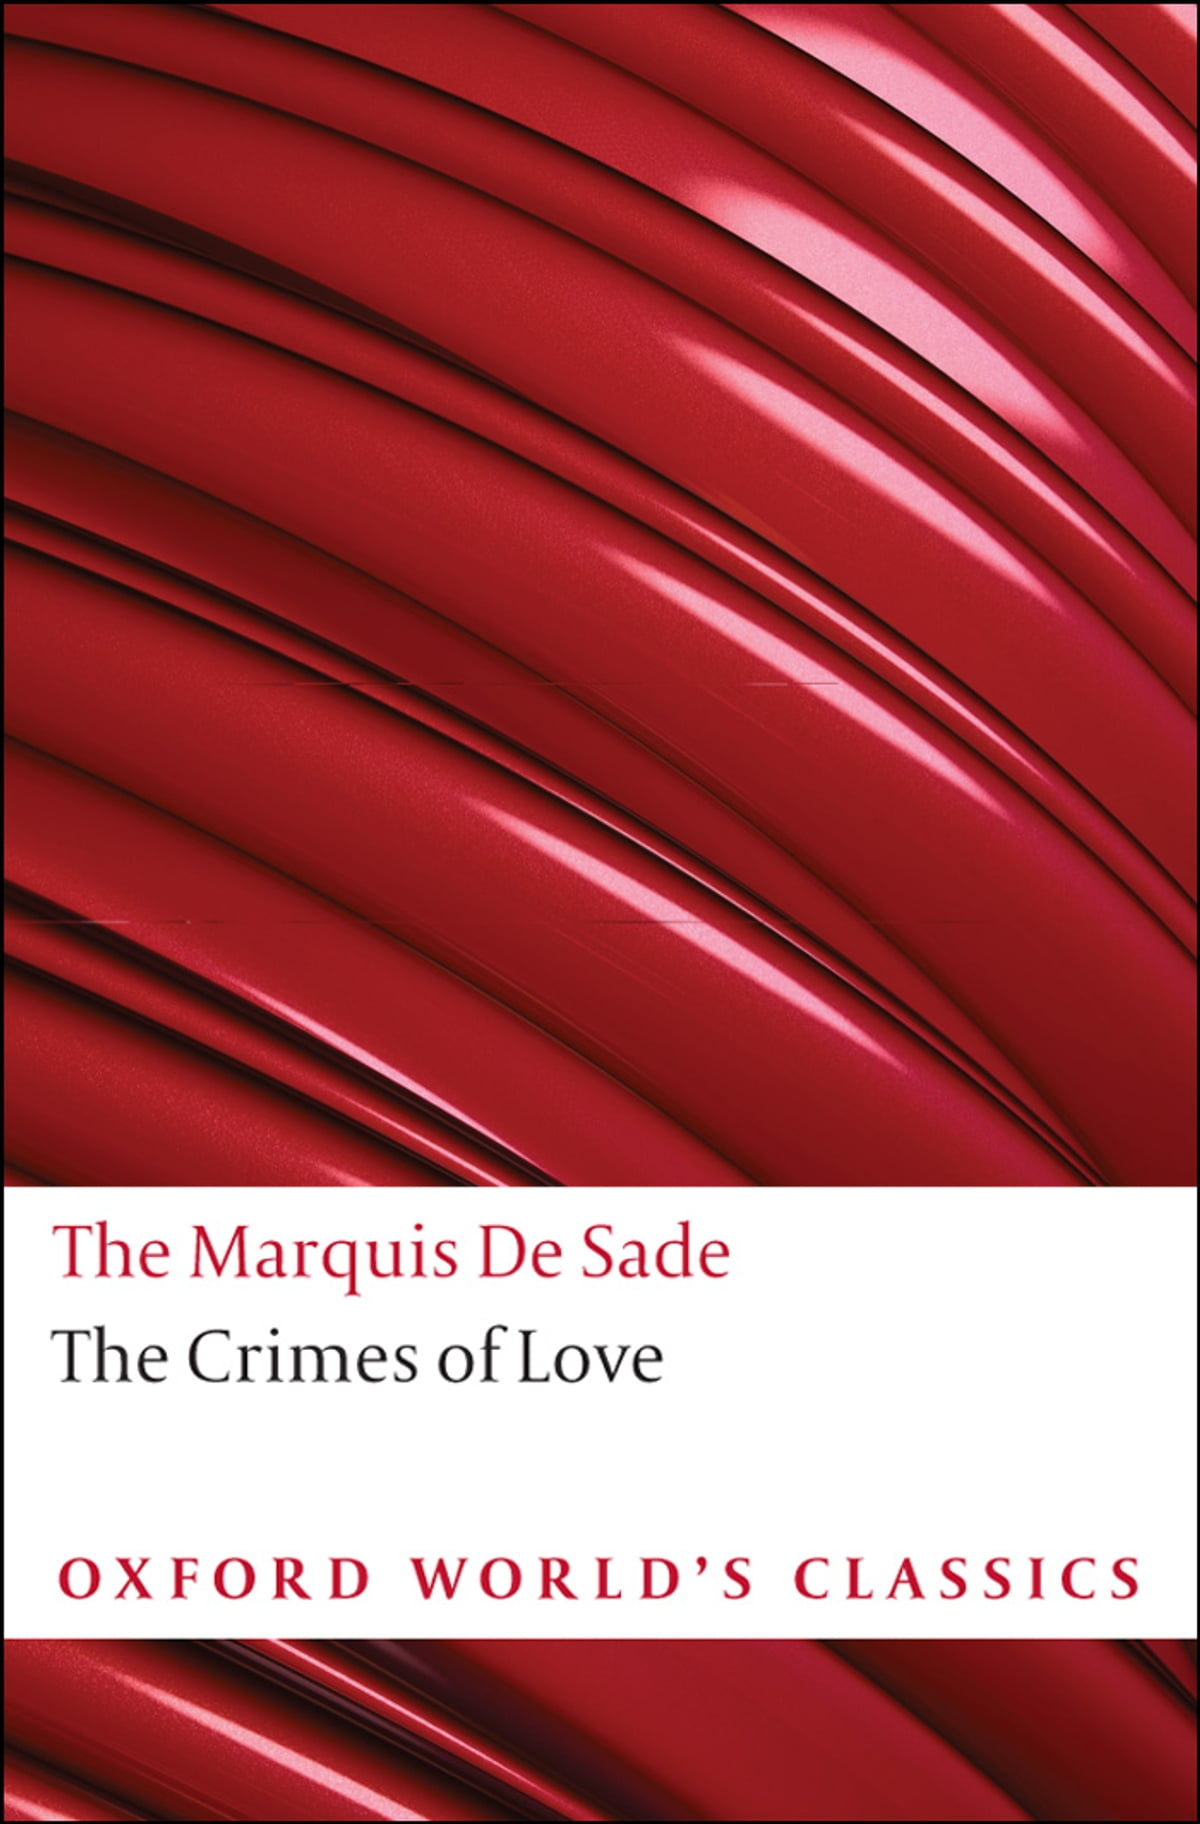 The Crimes Of Love  Heroic And Tragic Tales Preceeded By An Essay  The Crimes Of Love  Heroic And Tragic Tales Preceeded By An Essay On  Novels Ebook By Marquis De Sade    Rakuten Kobo Search Essays In English also English Essay Samples  English Learning Essay